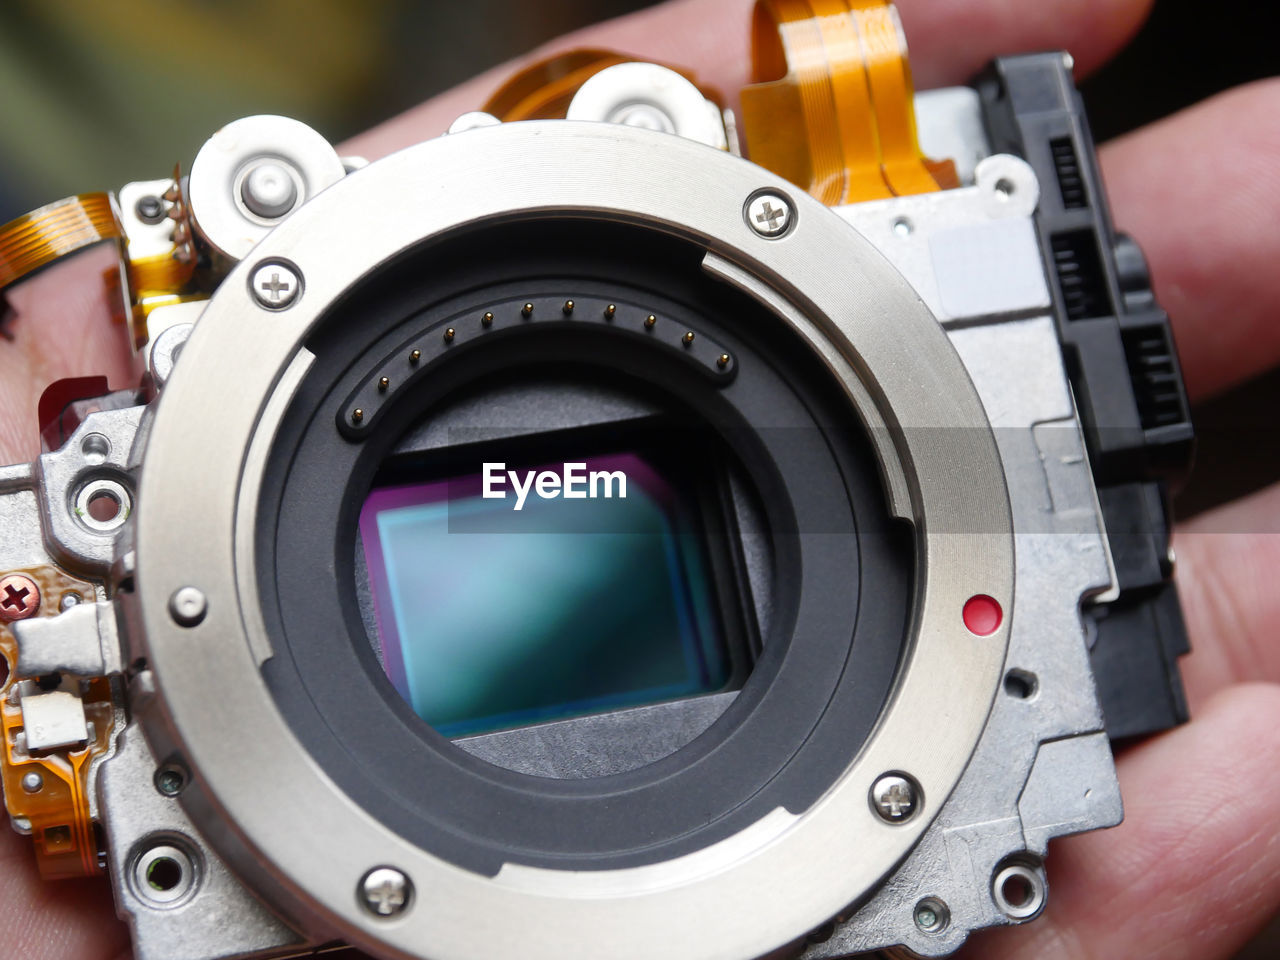 technology, camera - photographic equipment, photography themes, close-up, human hand, human body part, equipment, photographic equipment, hand, holding, people, digital camera, camera, body part, lens - eye, lens - optical instrument, personal perspective, focus on foreground, activity, man made, electrical equipment, slr camera, alloy, photographer